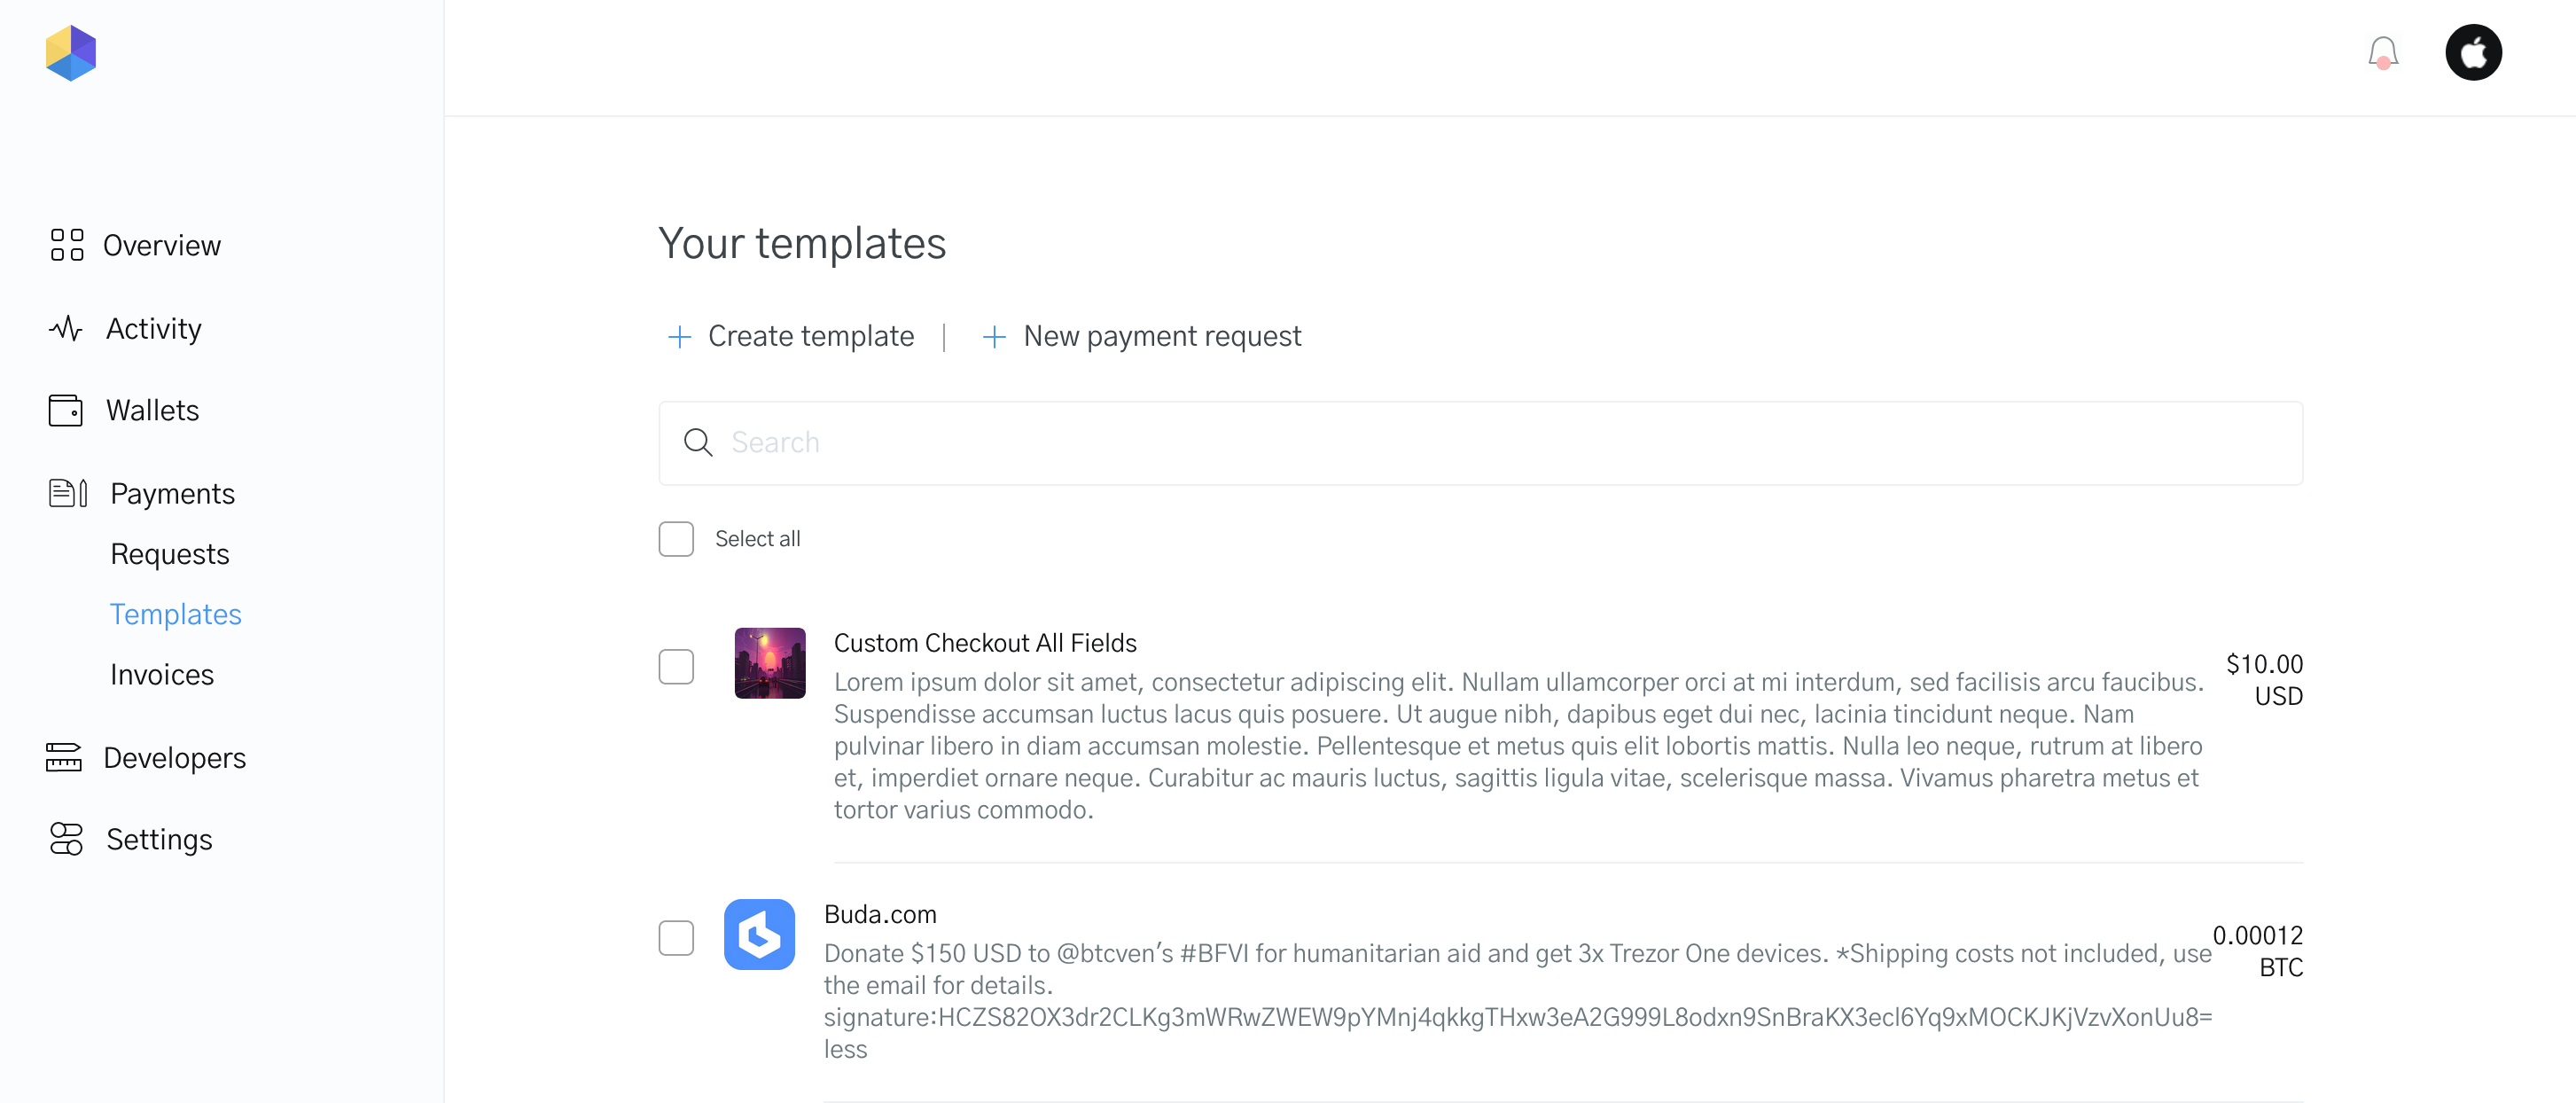 Image of your payment templates on the OpenNode dashboard